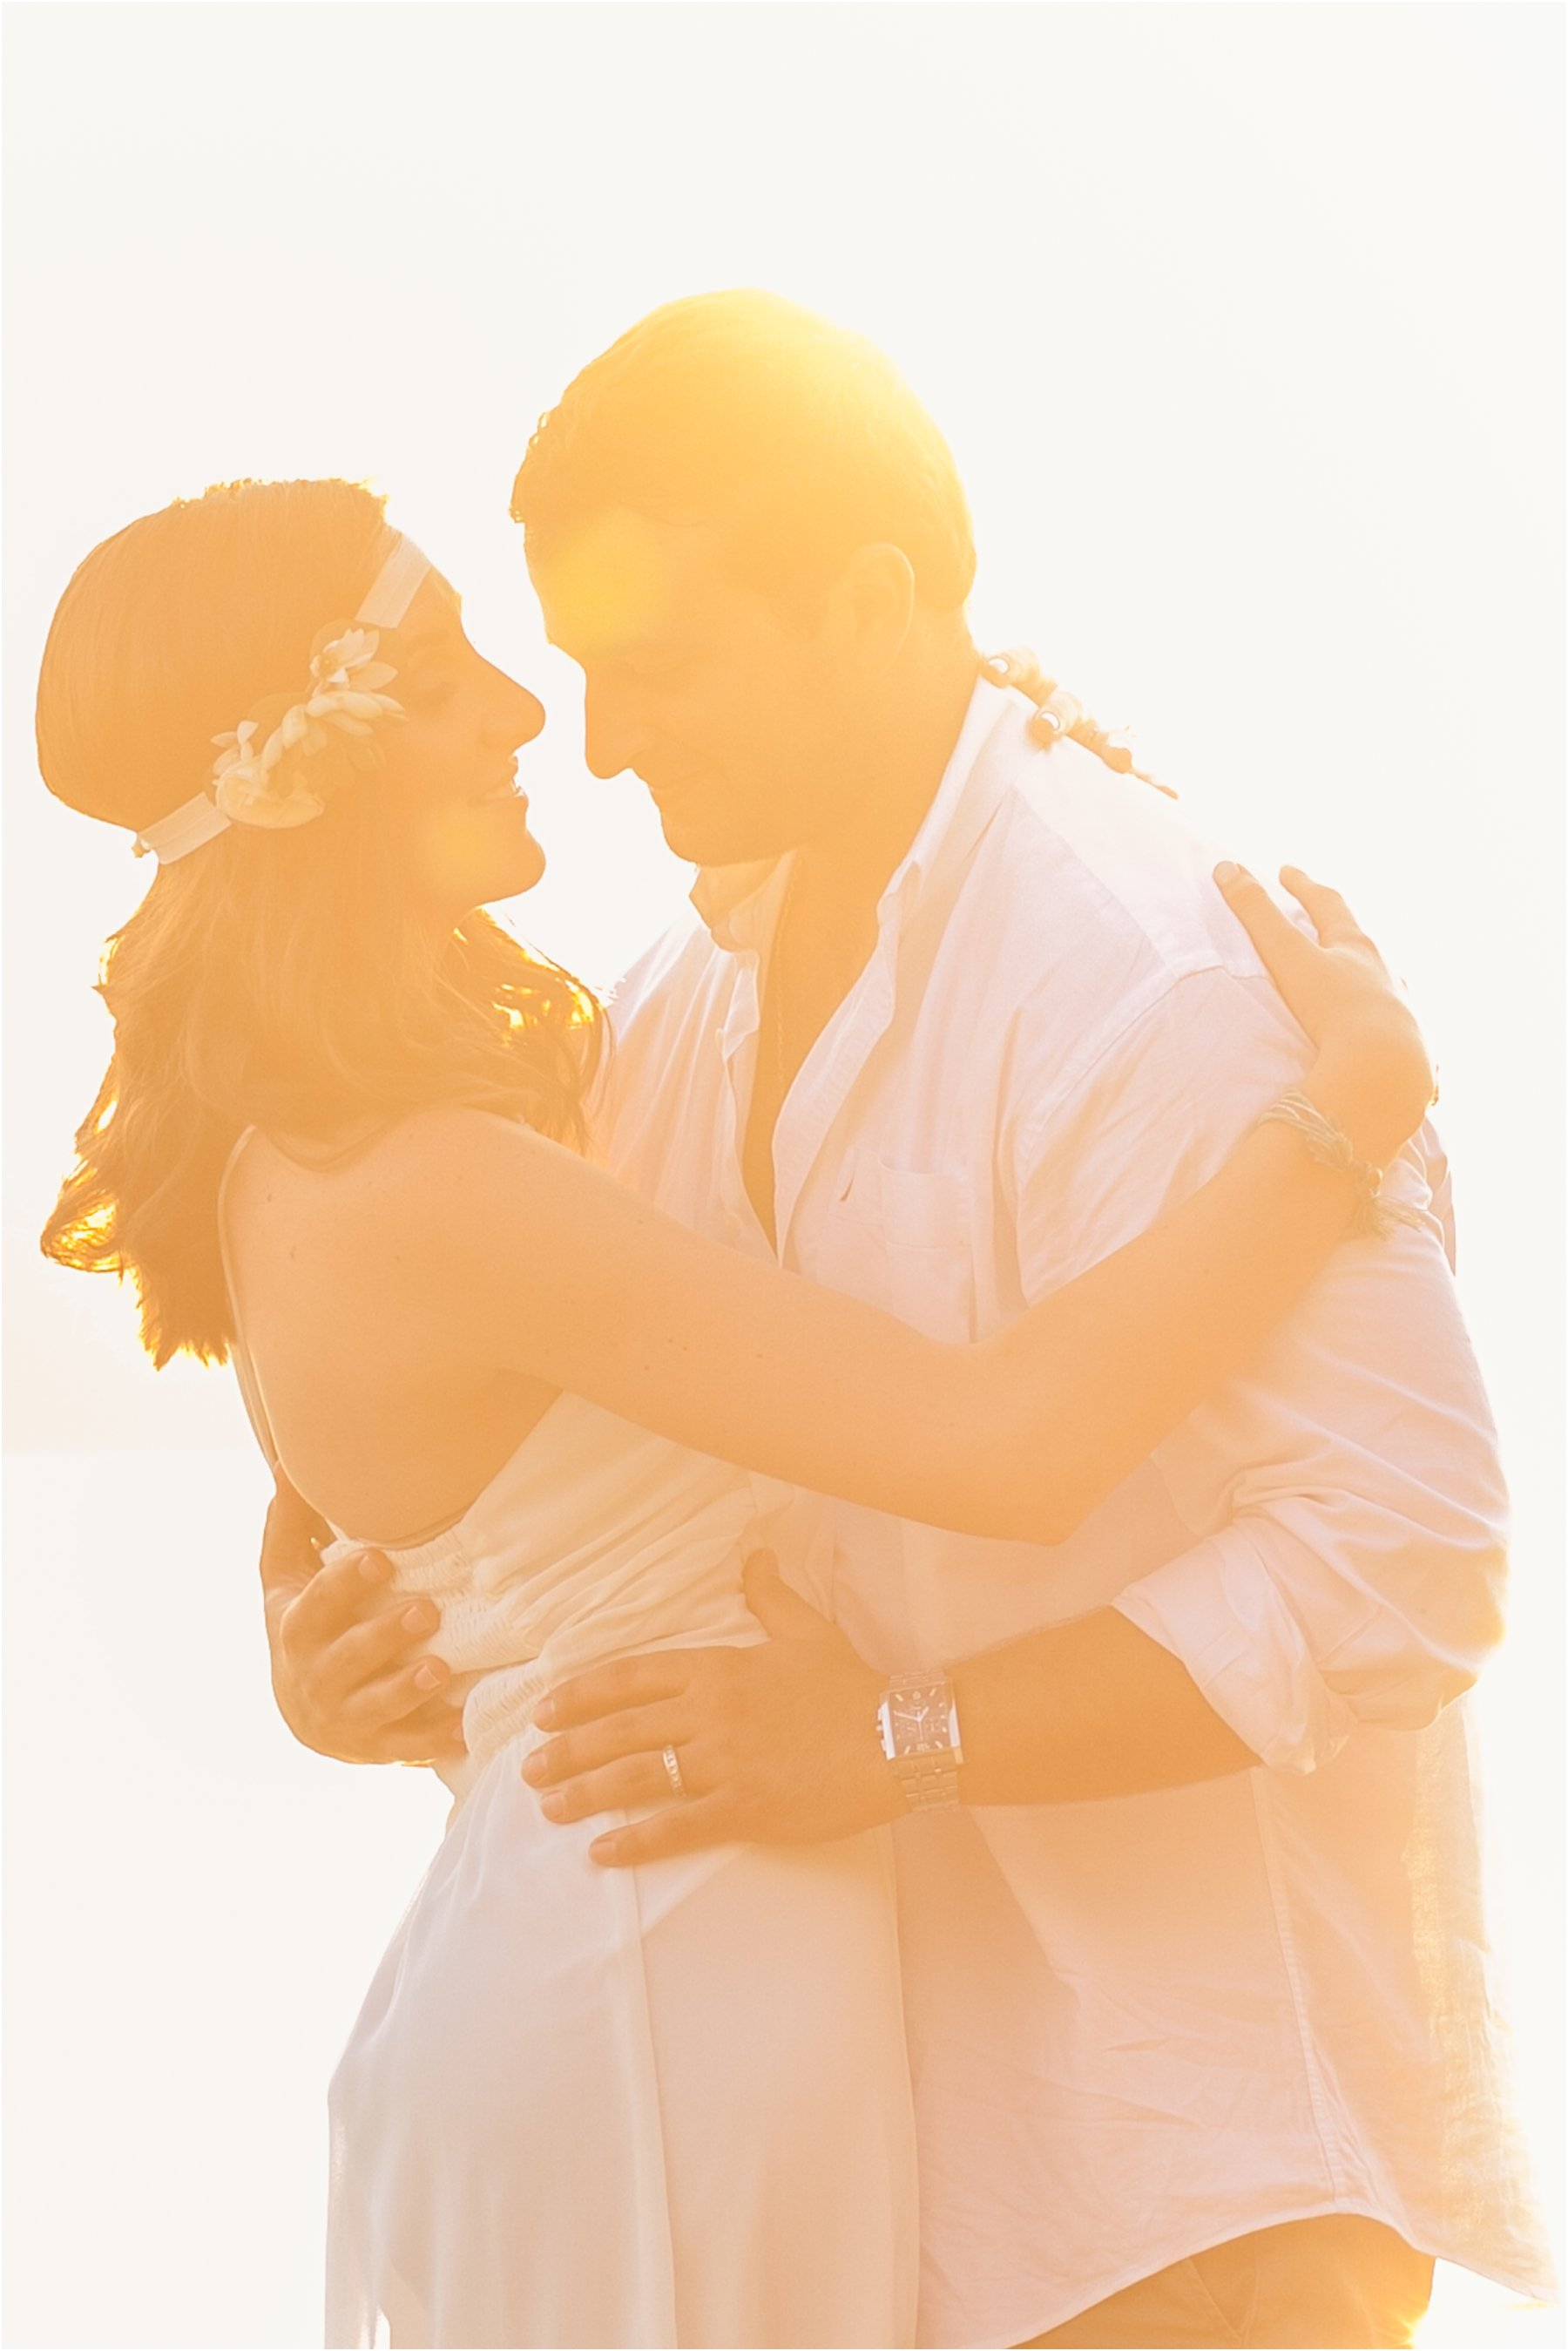 first_landing_wedding_boho_wedding_photography_virginia_Jessica_ryan_photography_0211